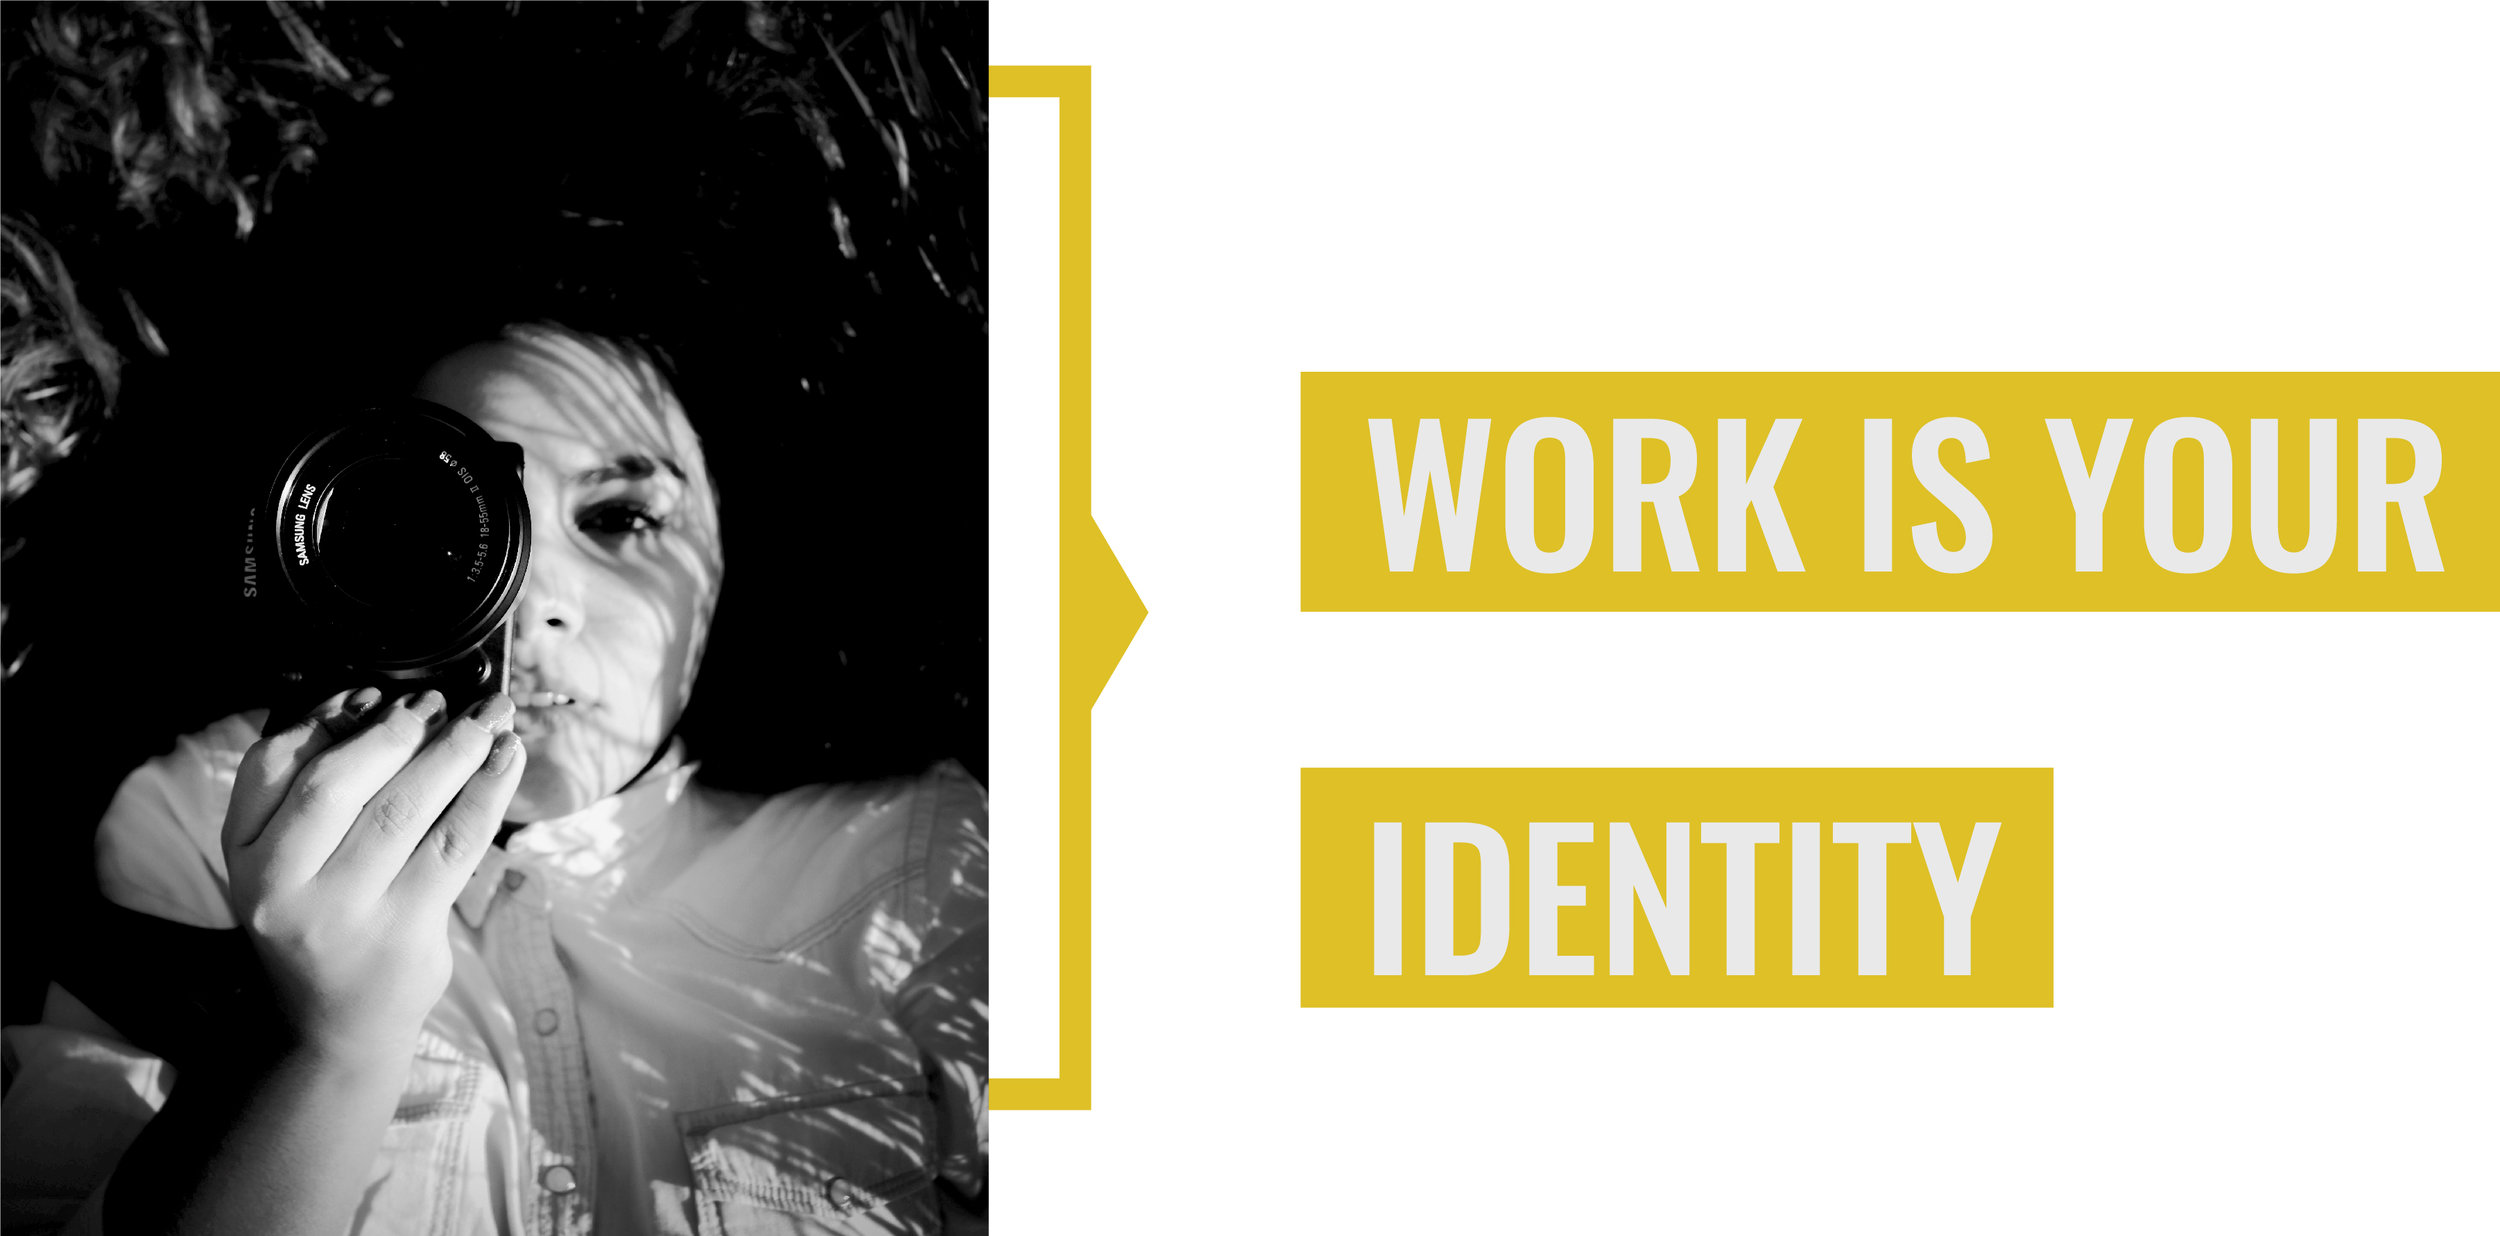 Work is your identity.